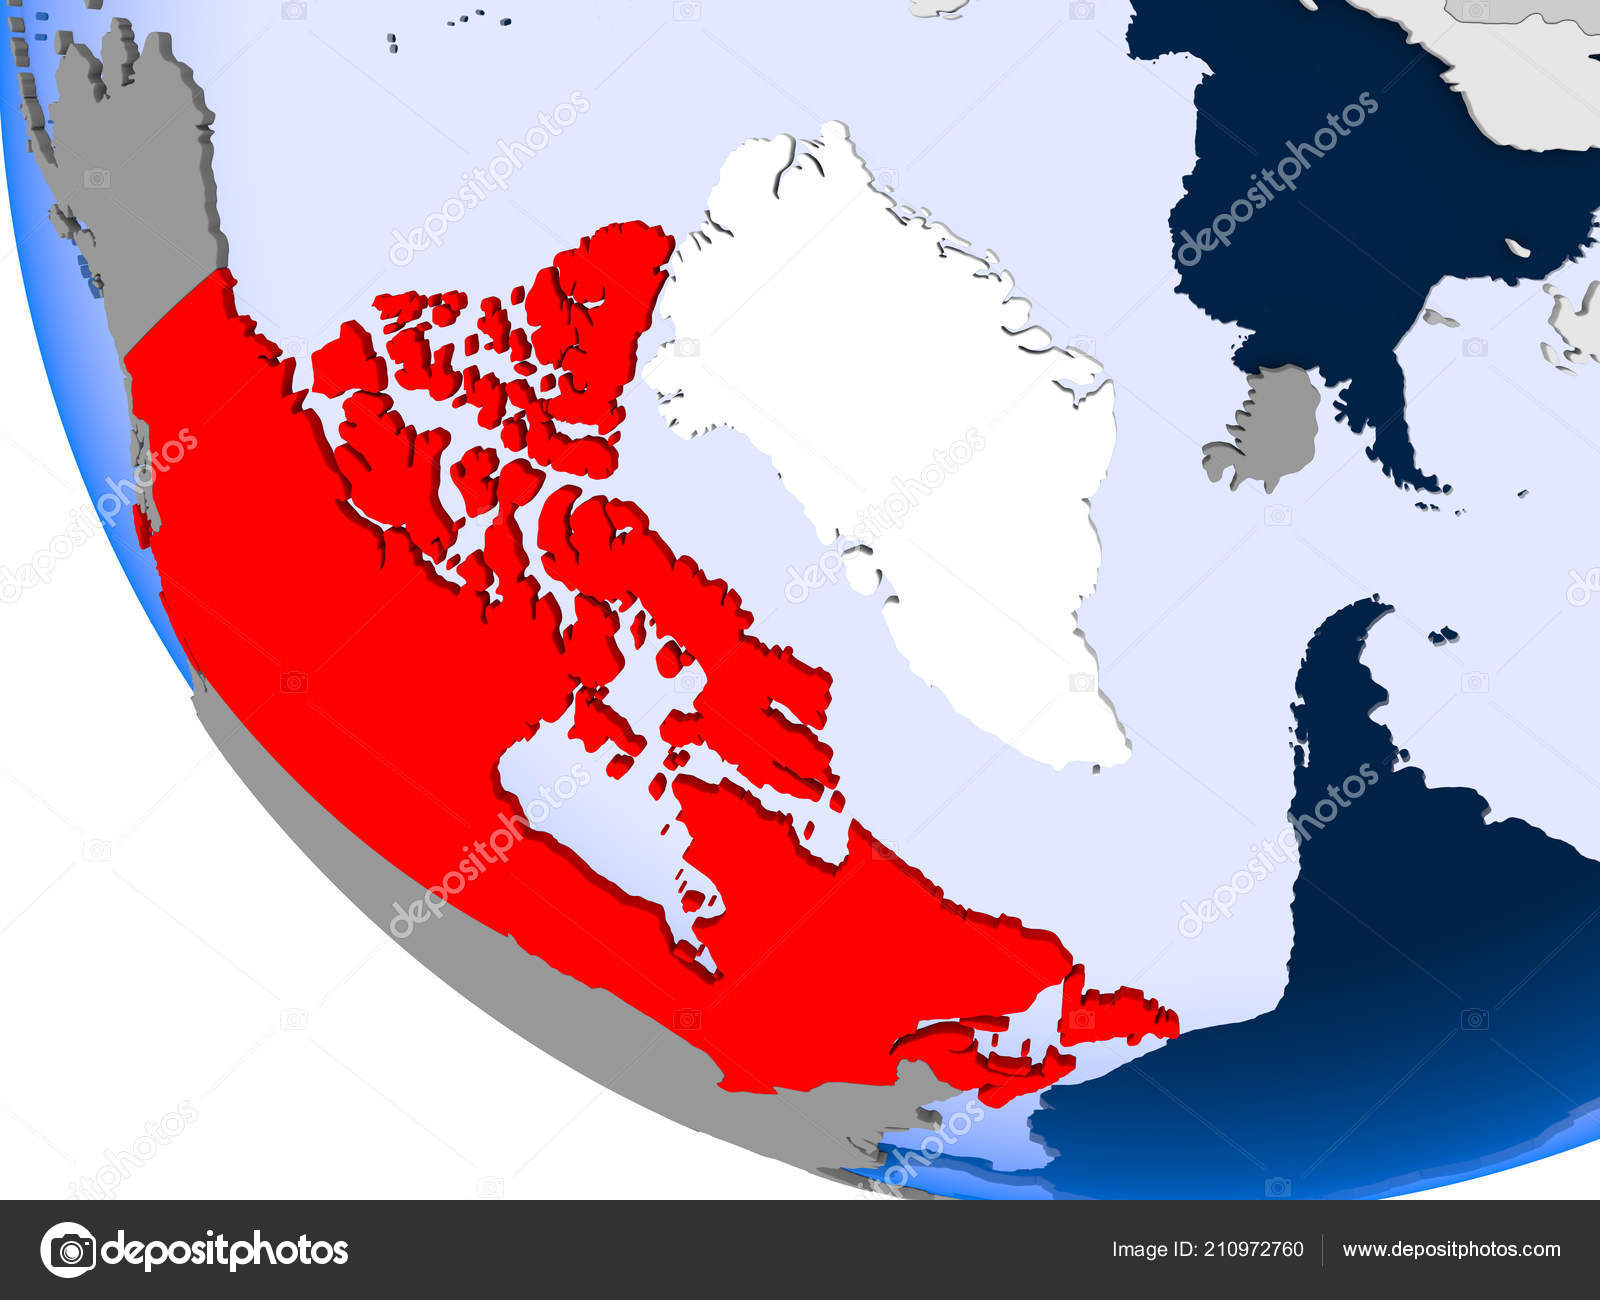 Map Of Canada Red.Map Canada Red Political Globe Transparent Oceans Illustration